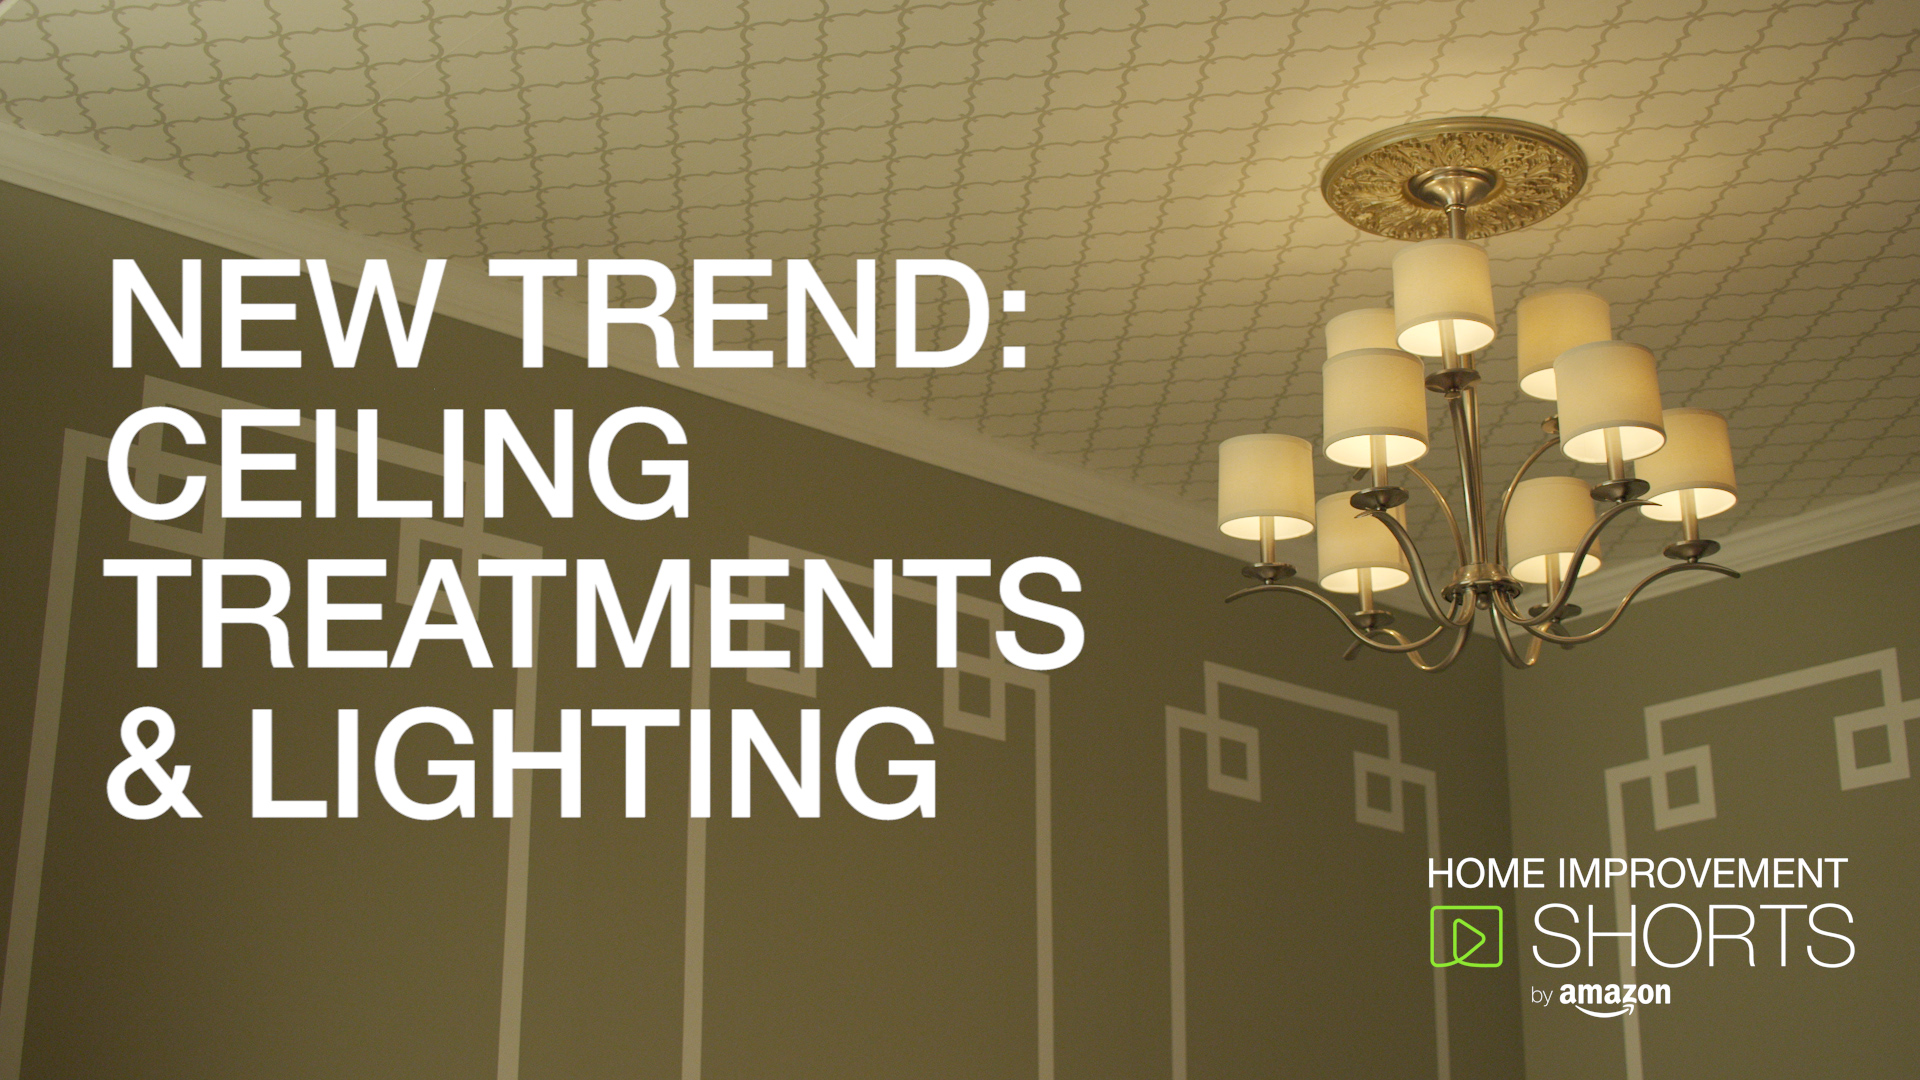 New Trend: Ceiling Treatments & Lighting